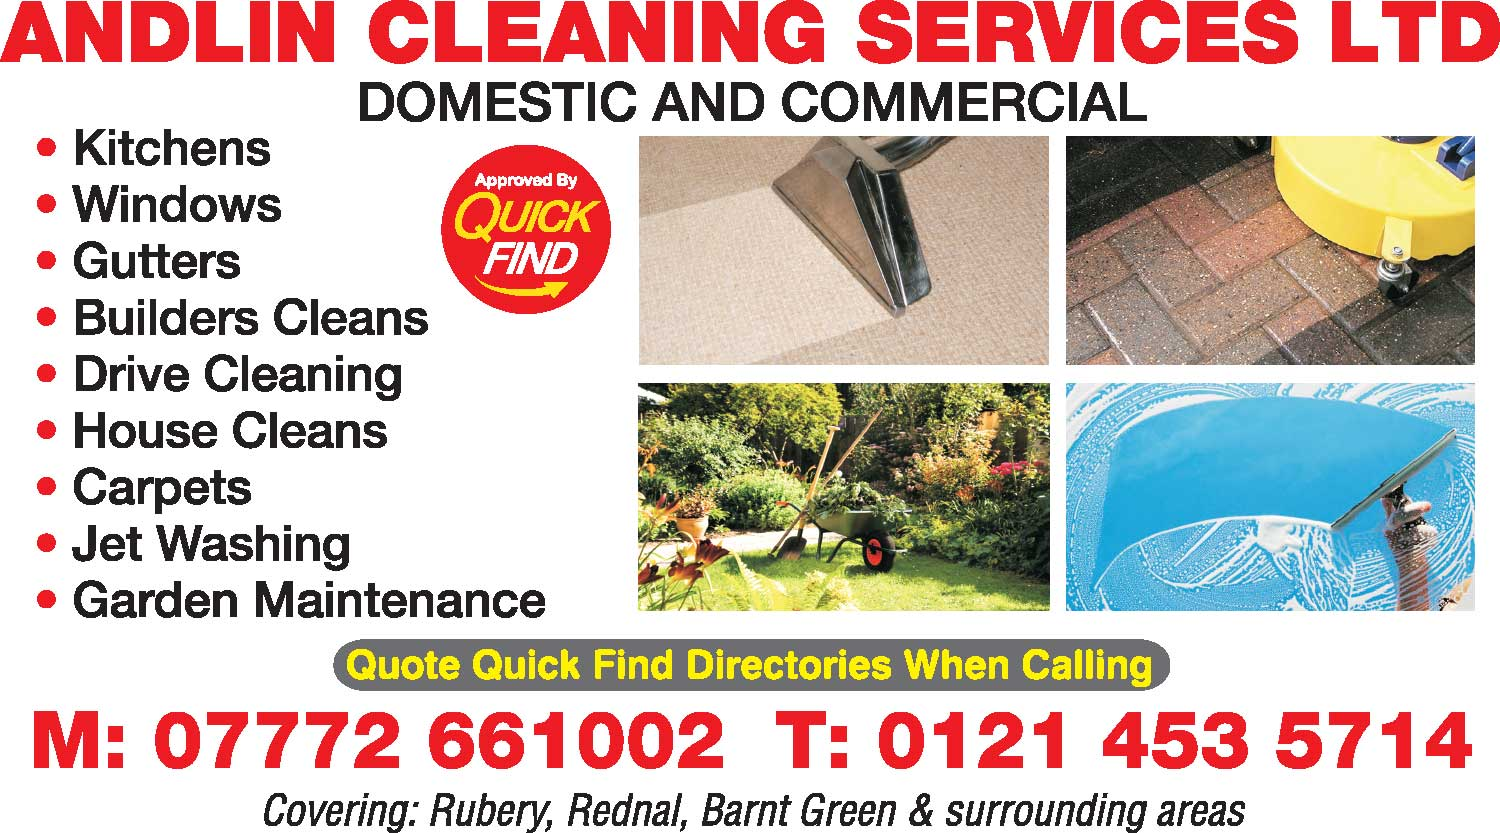 Andlin Cleaning Services Ltd